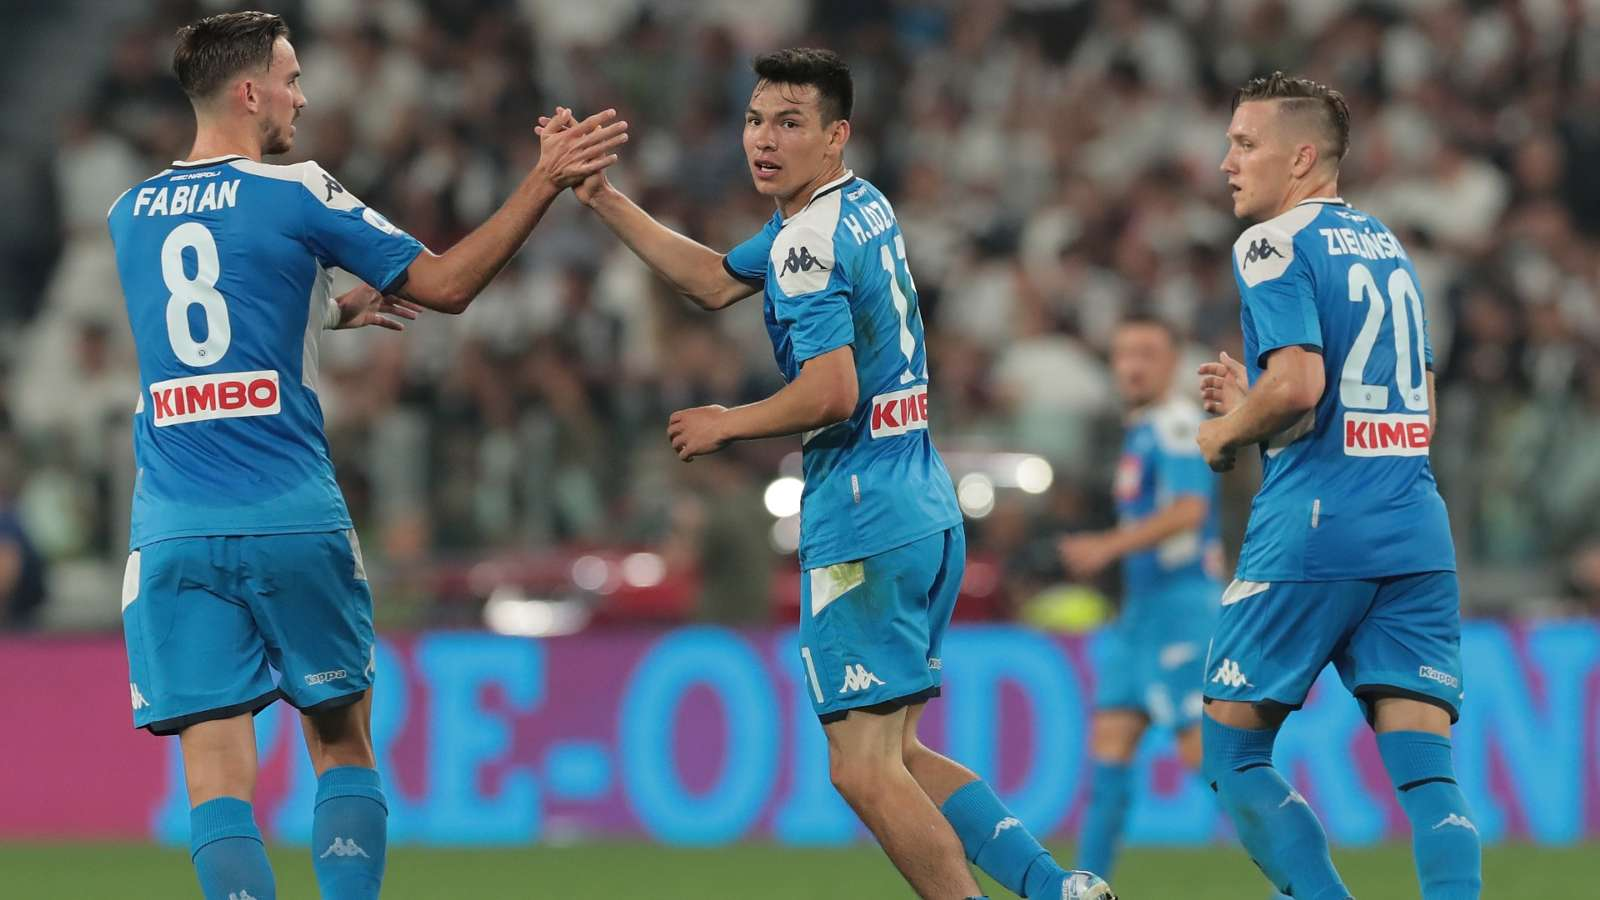 Real Madrid intensify negotiations with Napoli star